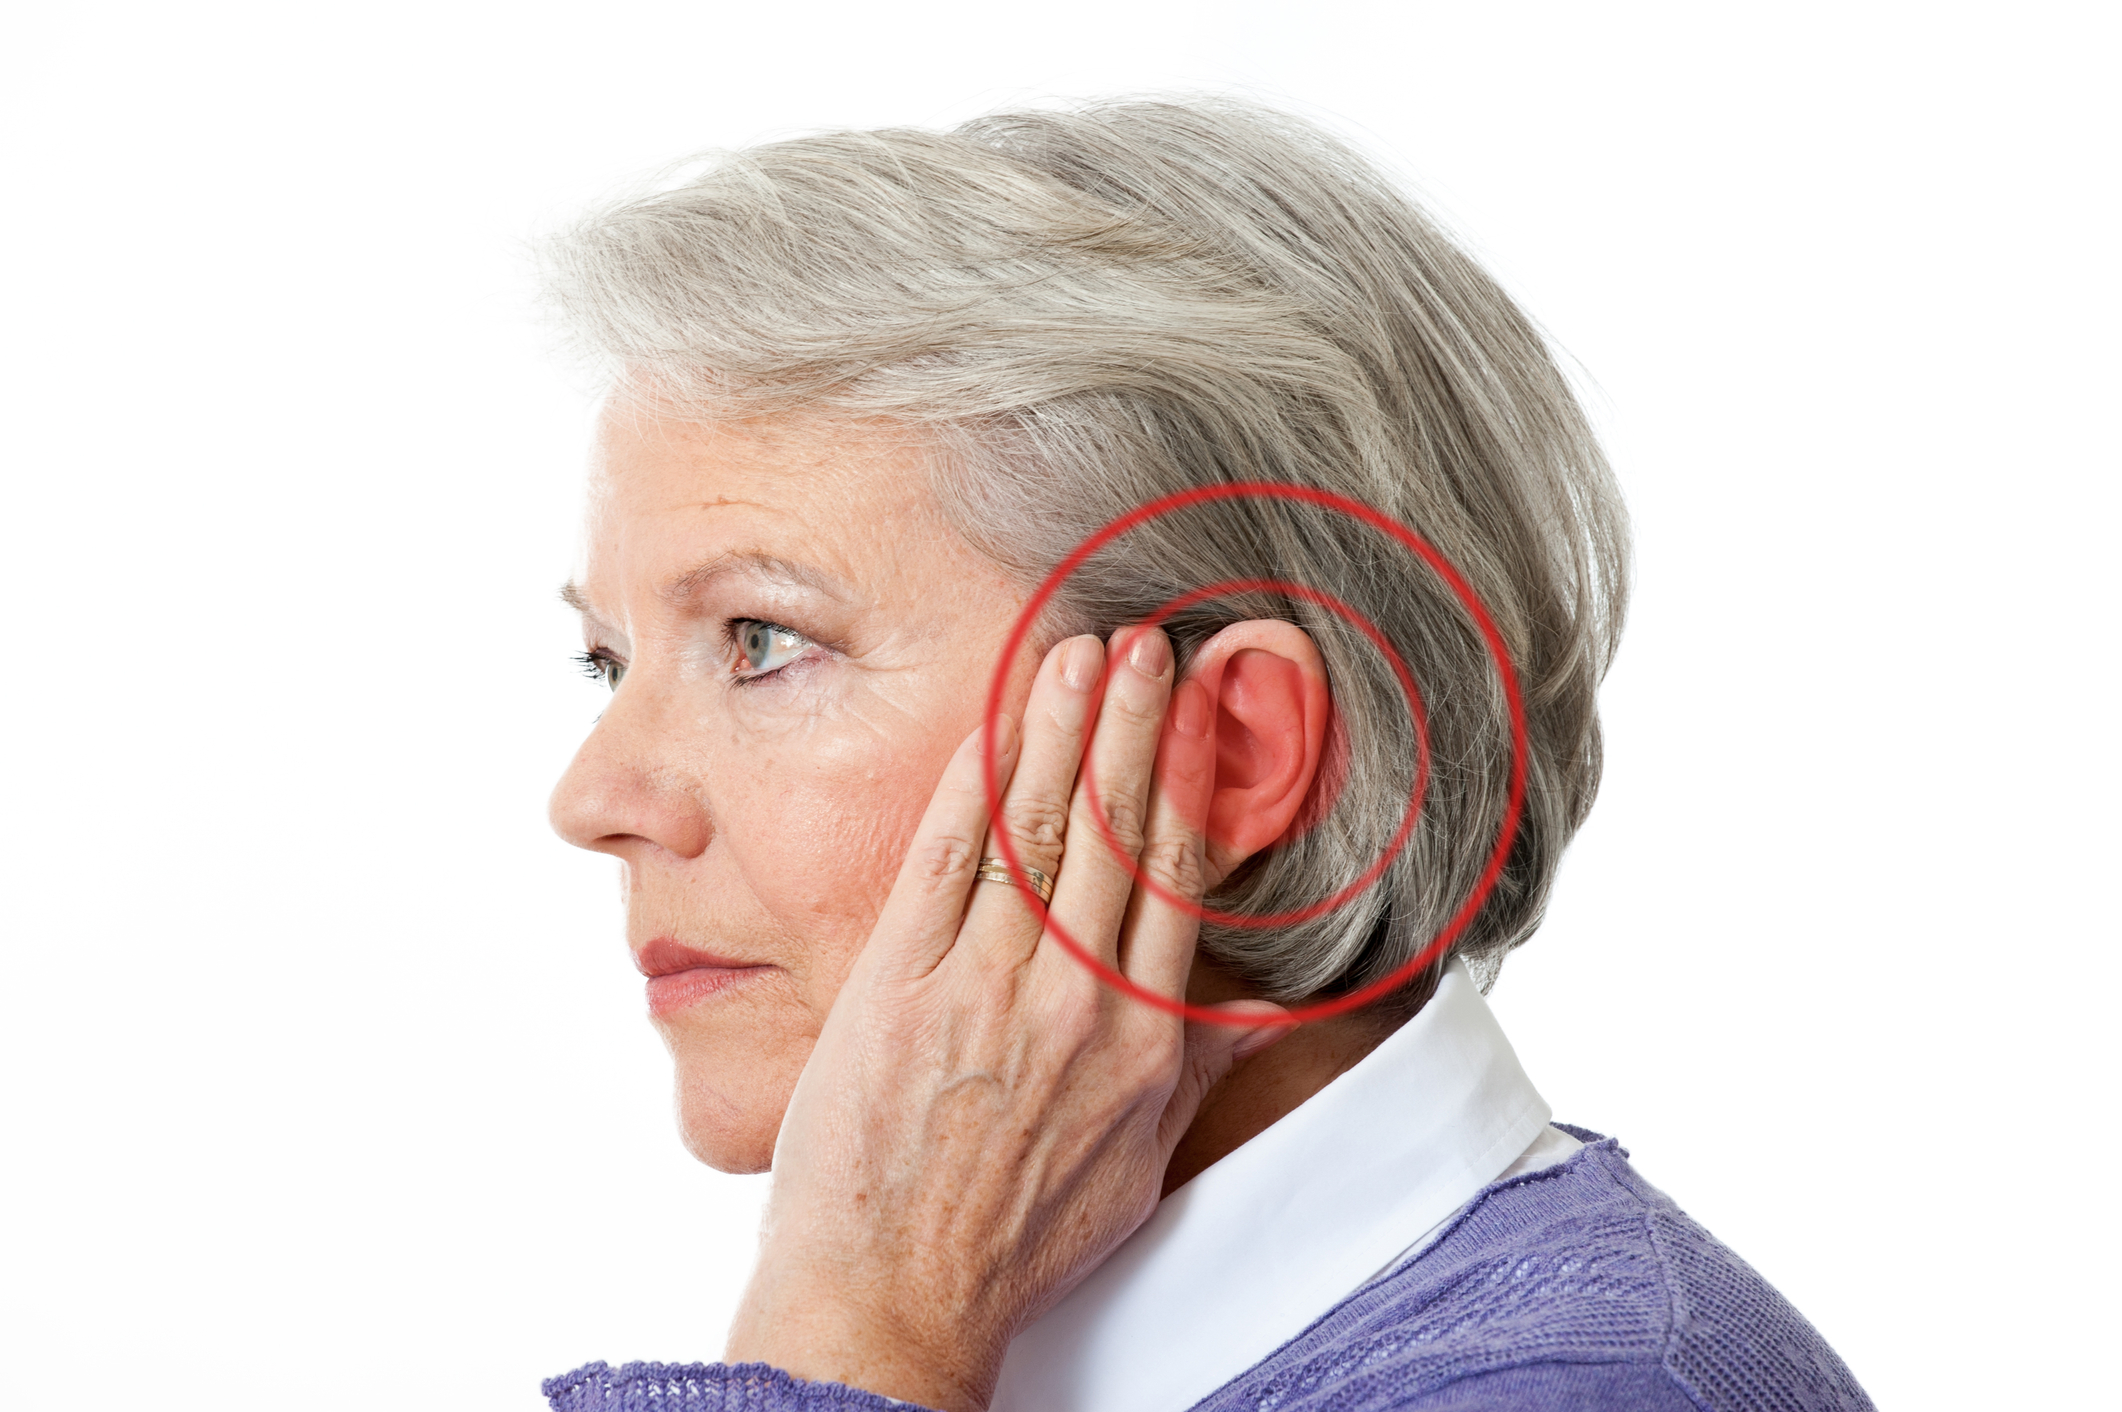 Treatment of Tinnitus with Cannabis